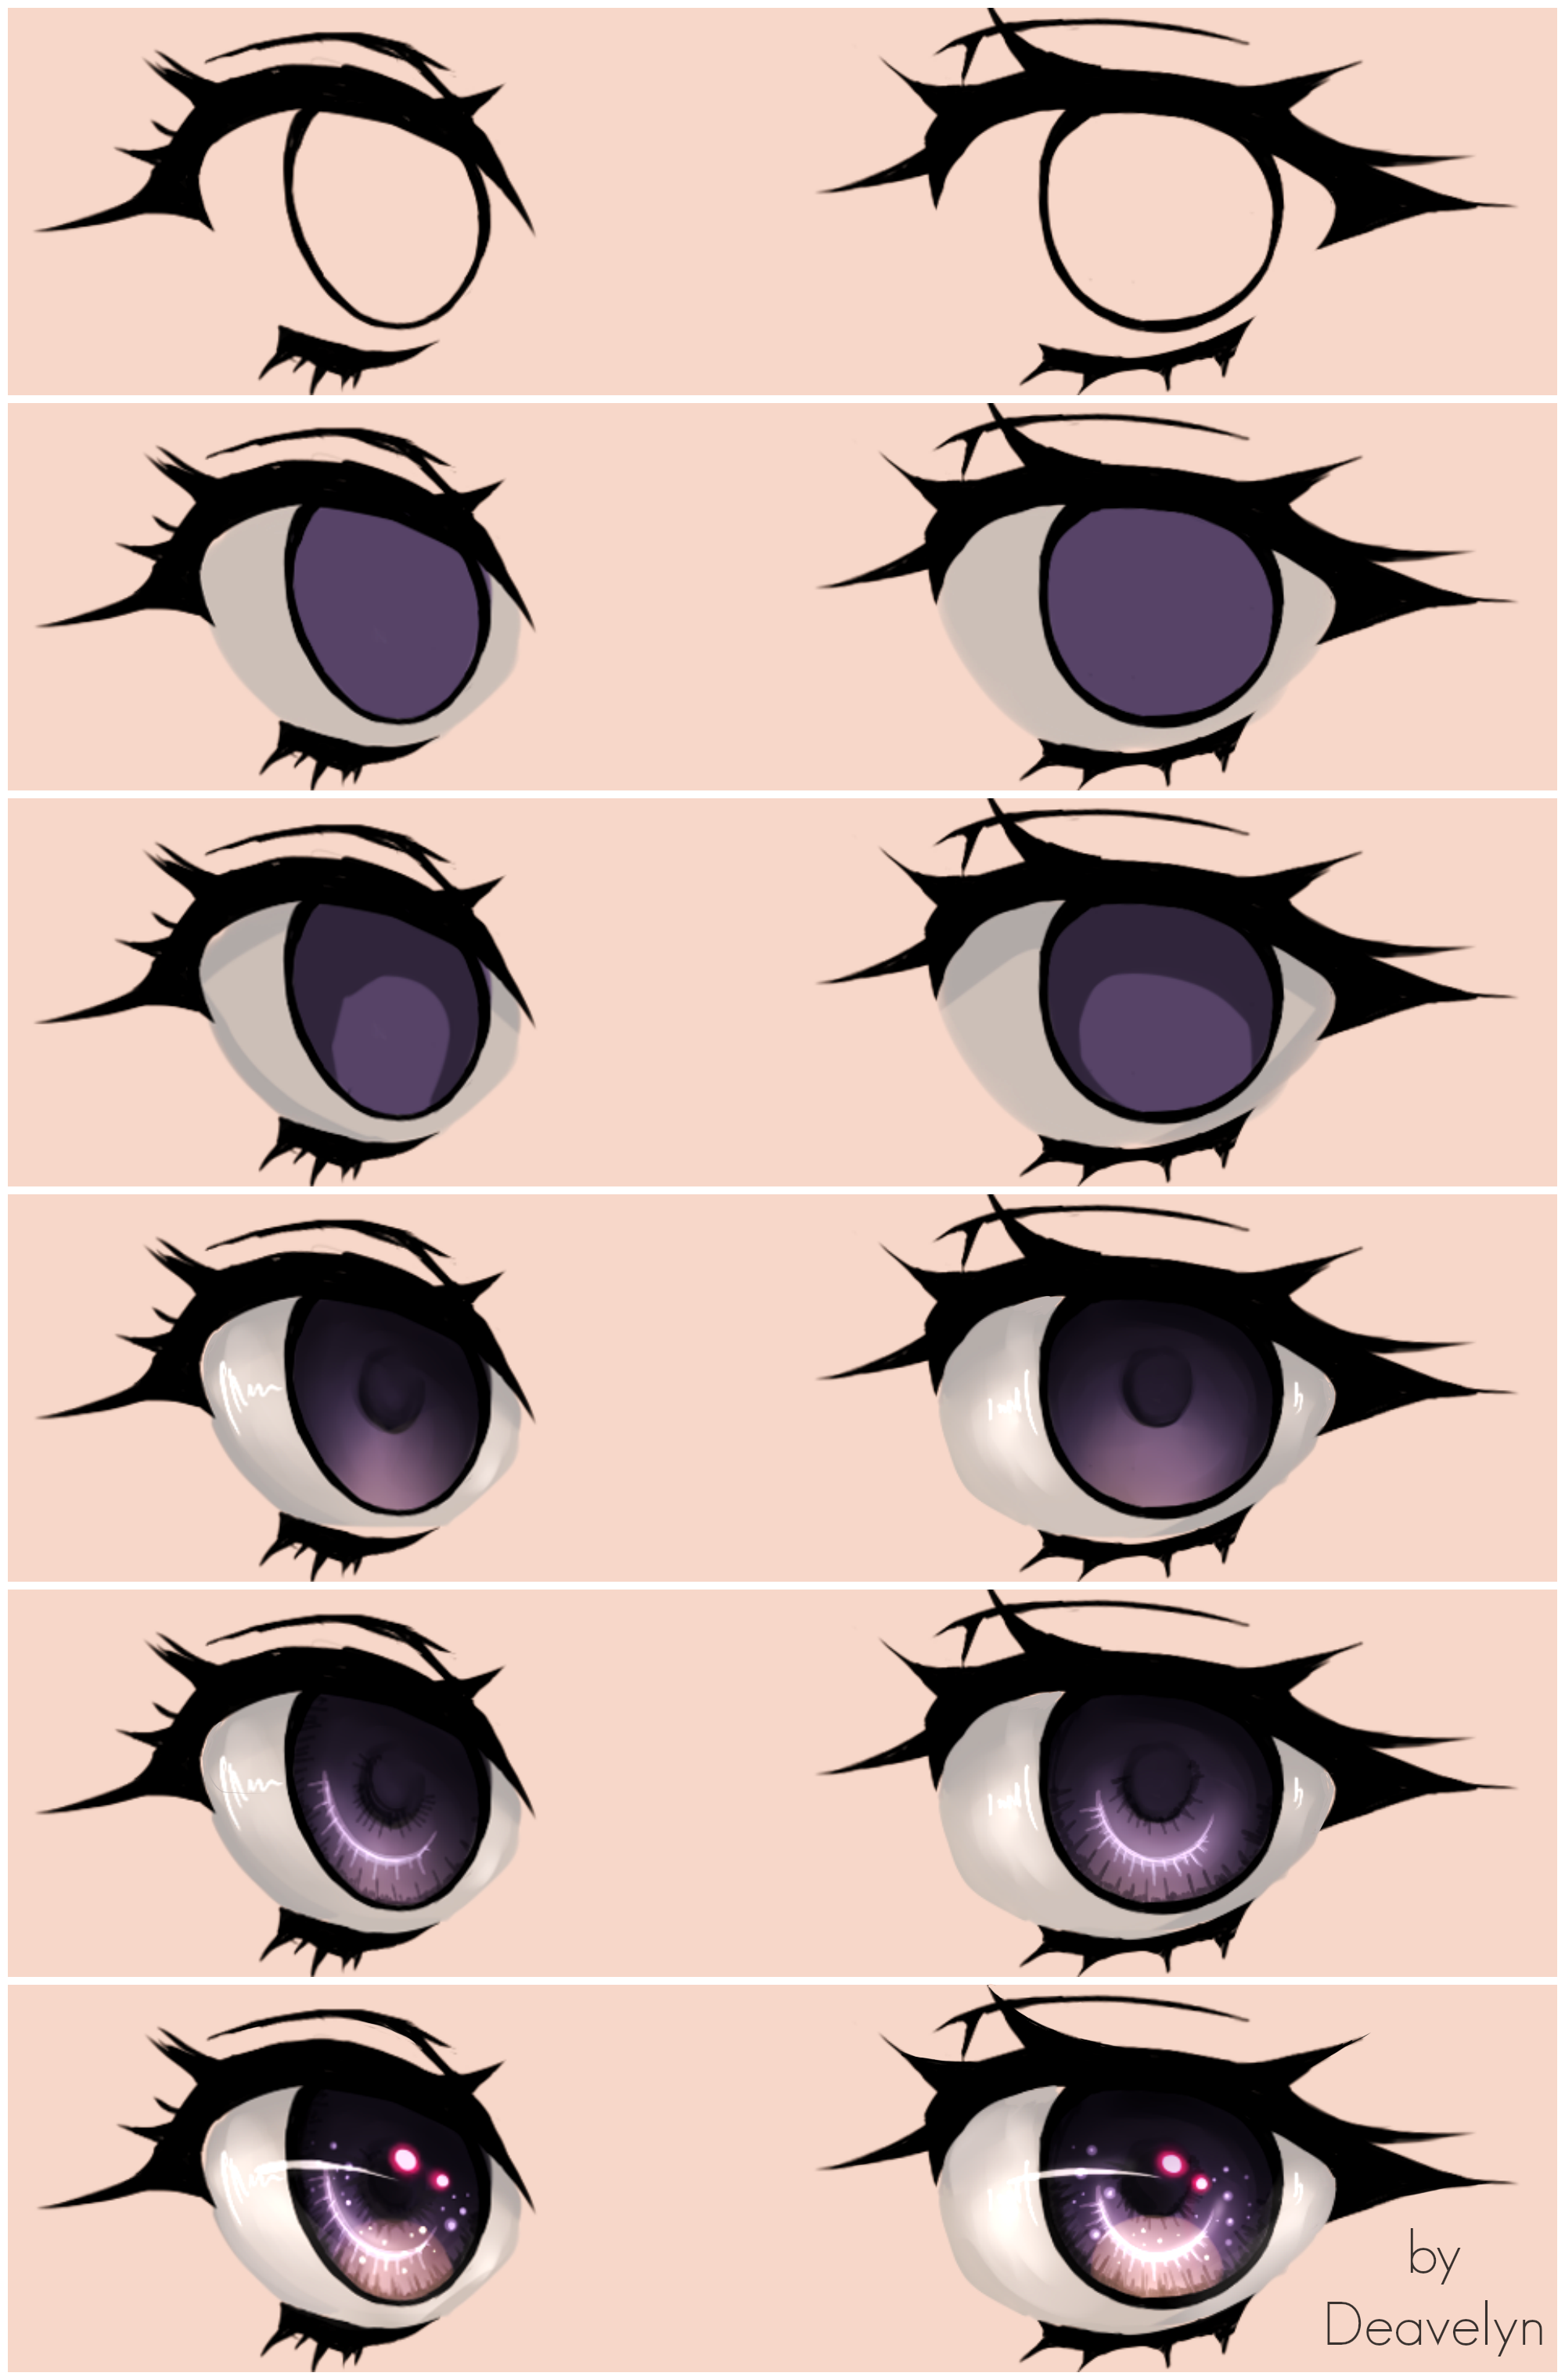 Starry Eyes Steps by Maruvie(画像あり) 目の描画のチュートリアル, デジタル画, スケッチ